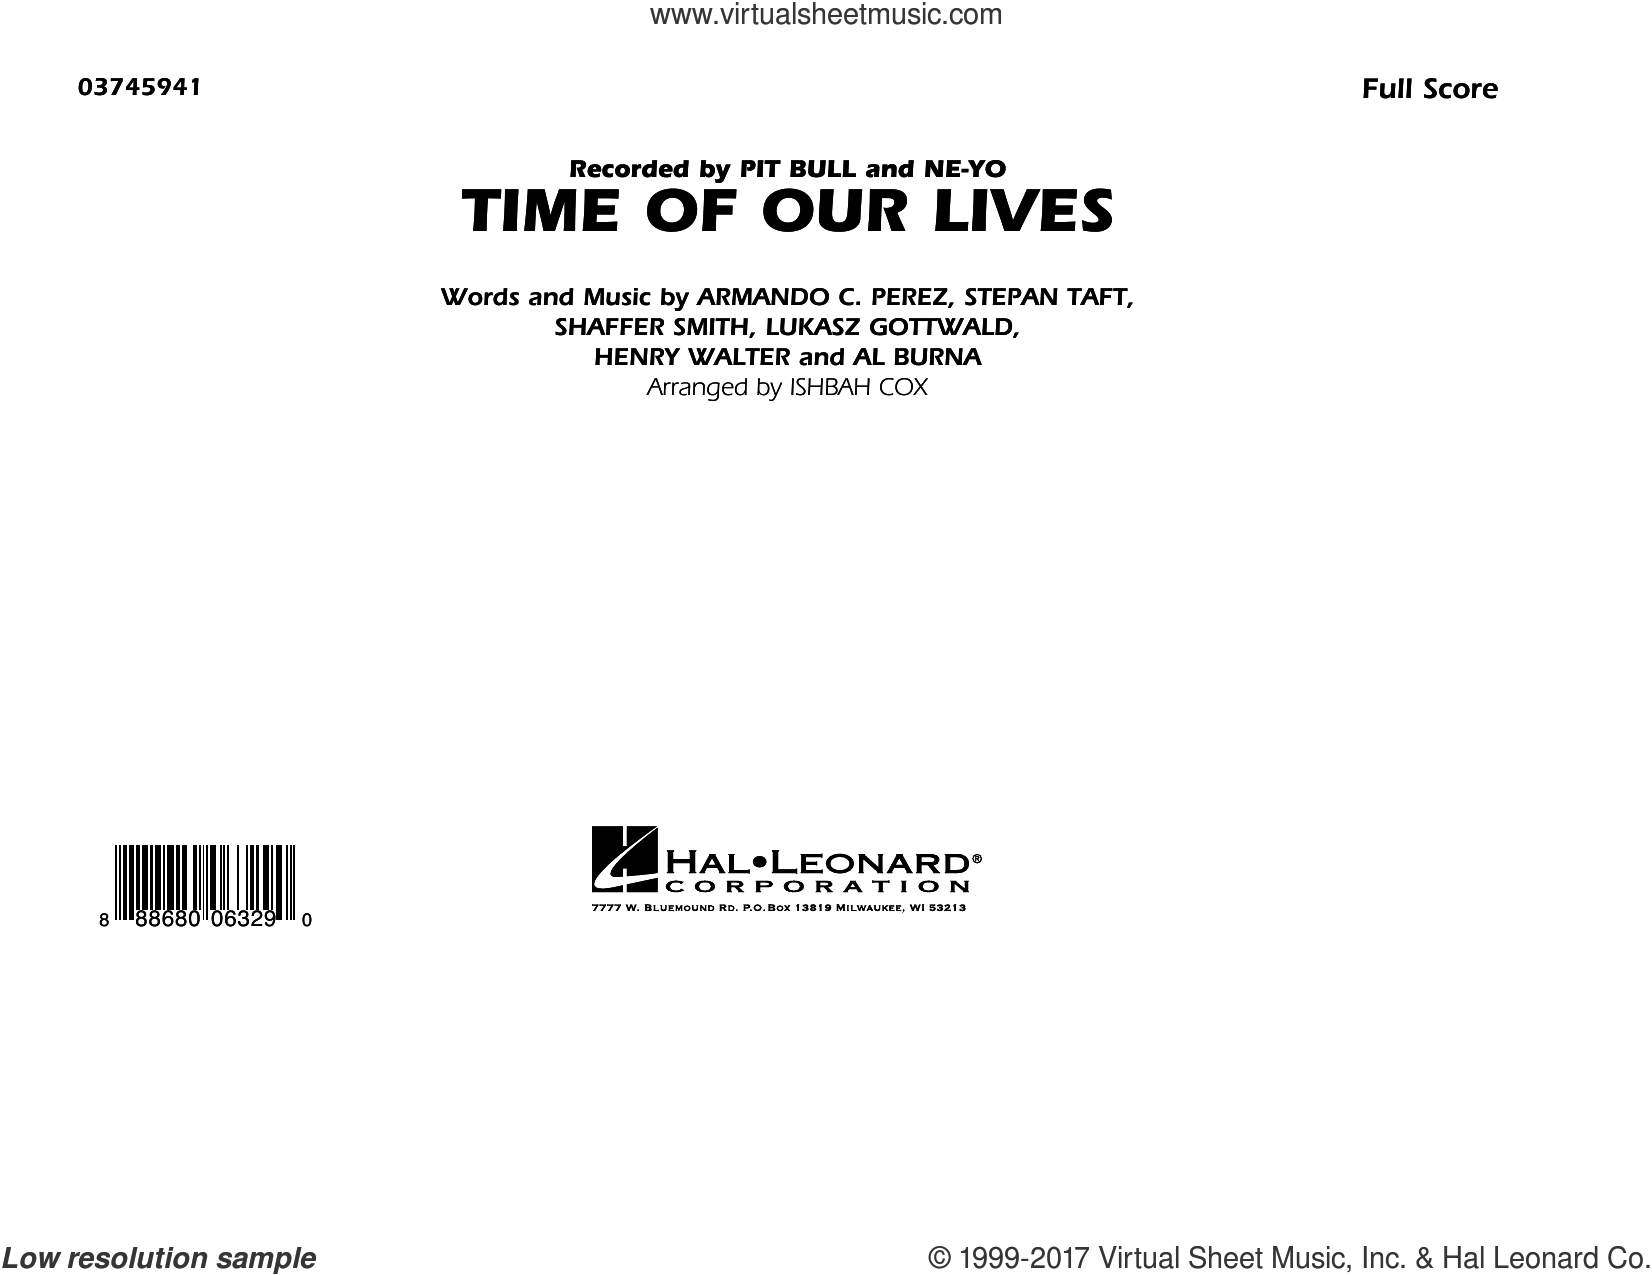 Time of Our Lives (COMPLETE) sheet music for marching band by Lukasz Gottwald, Henry Walter, Ishbah Cox, Pitbull & Ne-Yo and Shaffer Smith, intermediate marching band. Score Image Preview.